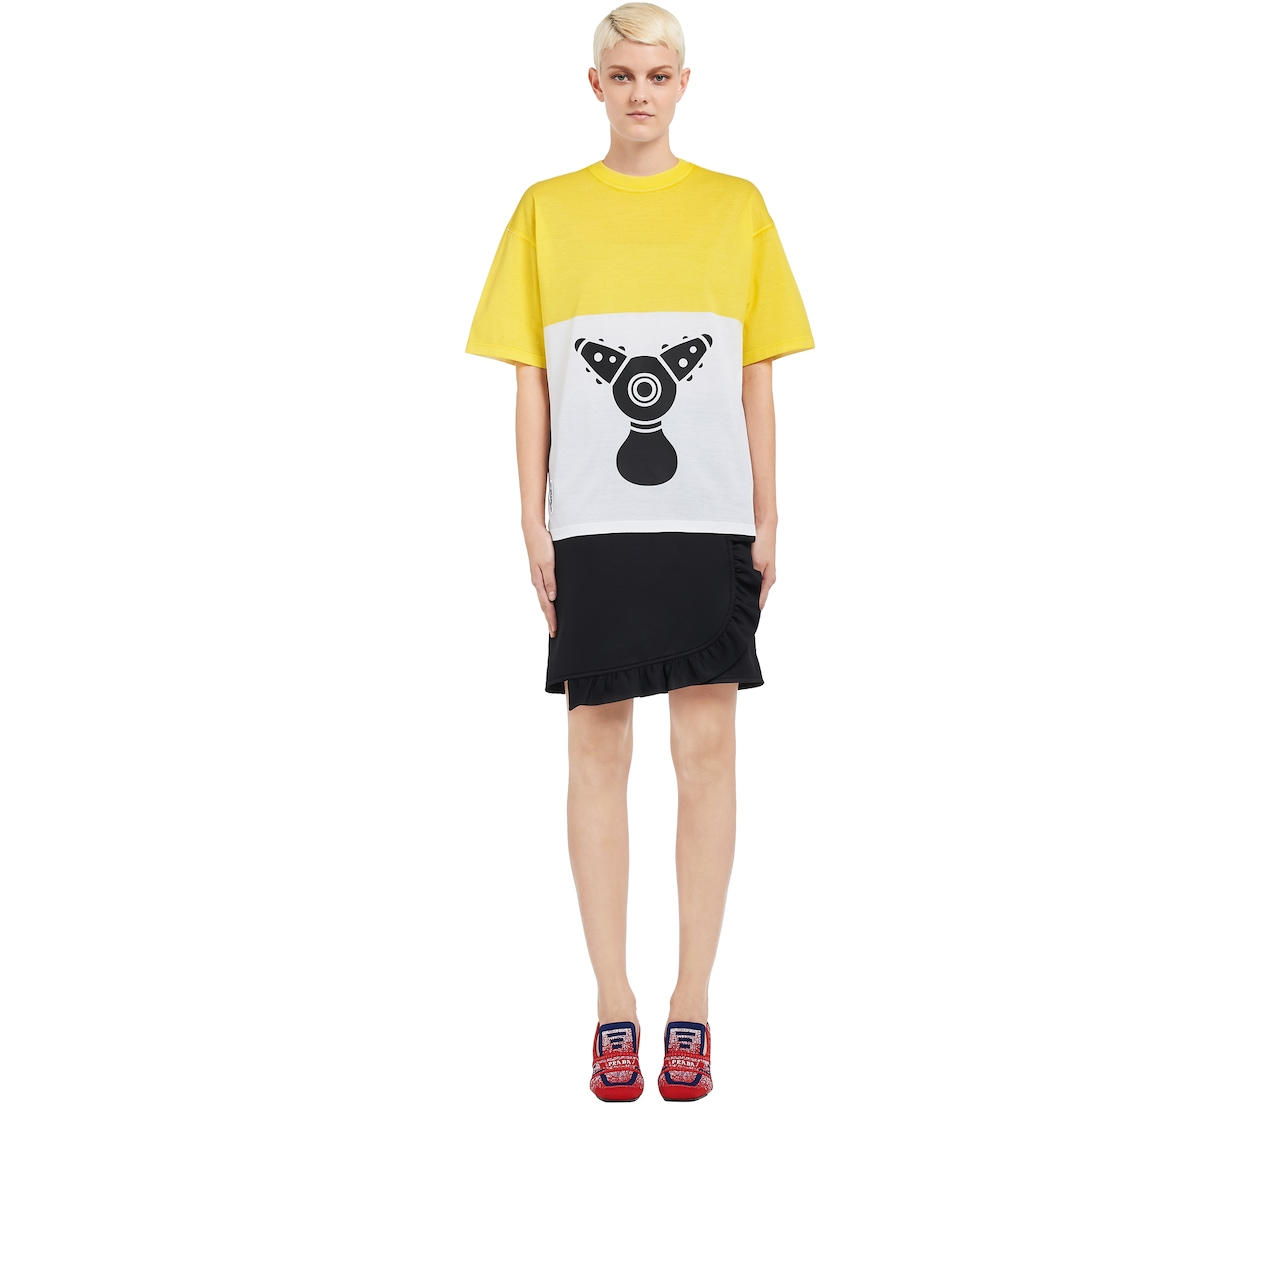 Pradamalia cotton jersey T-shirt